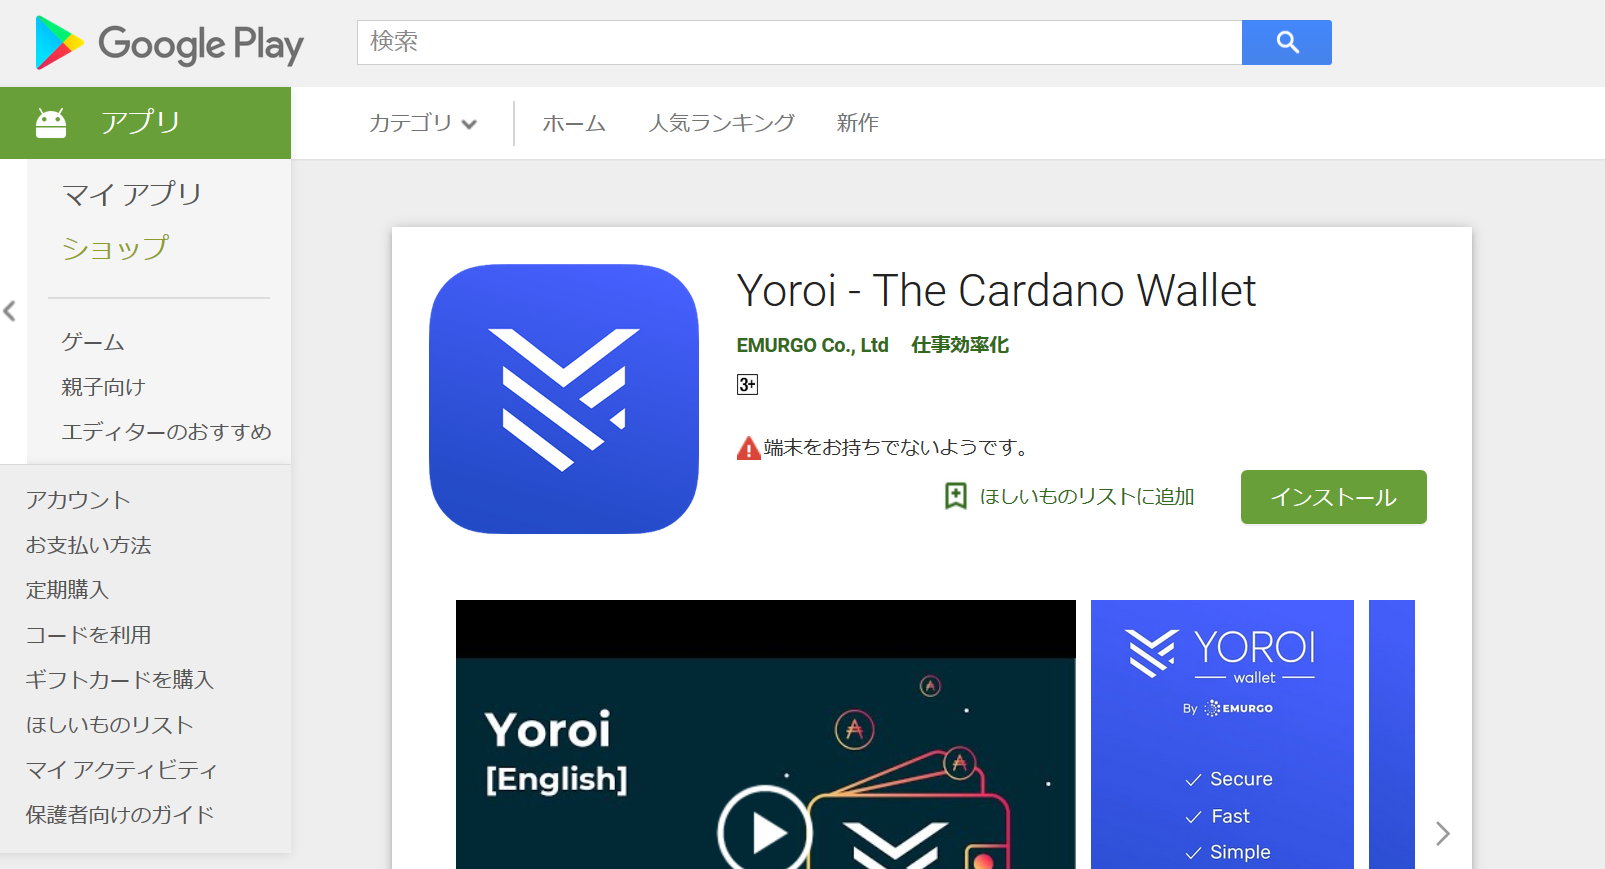 googleplay-Yoroi Wallet